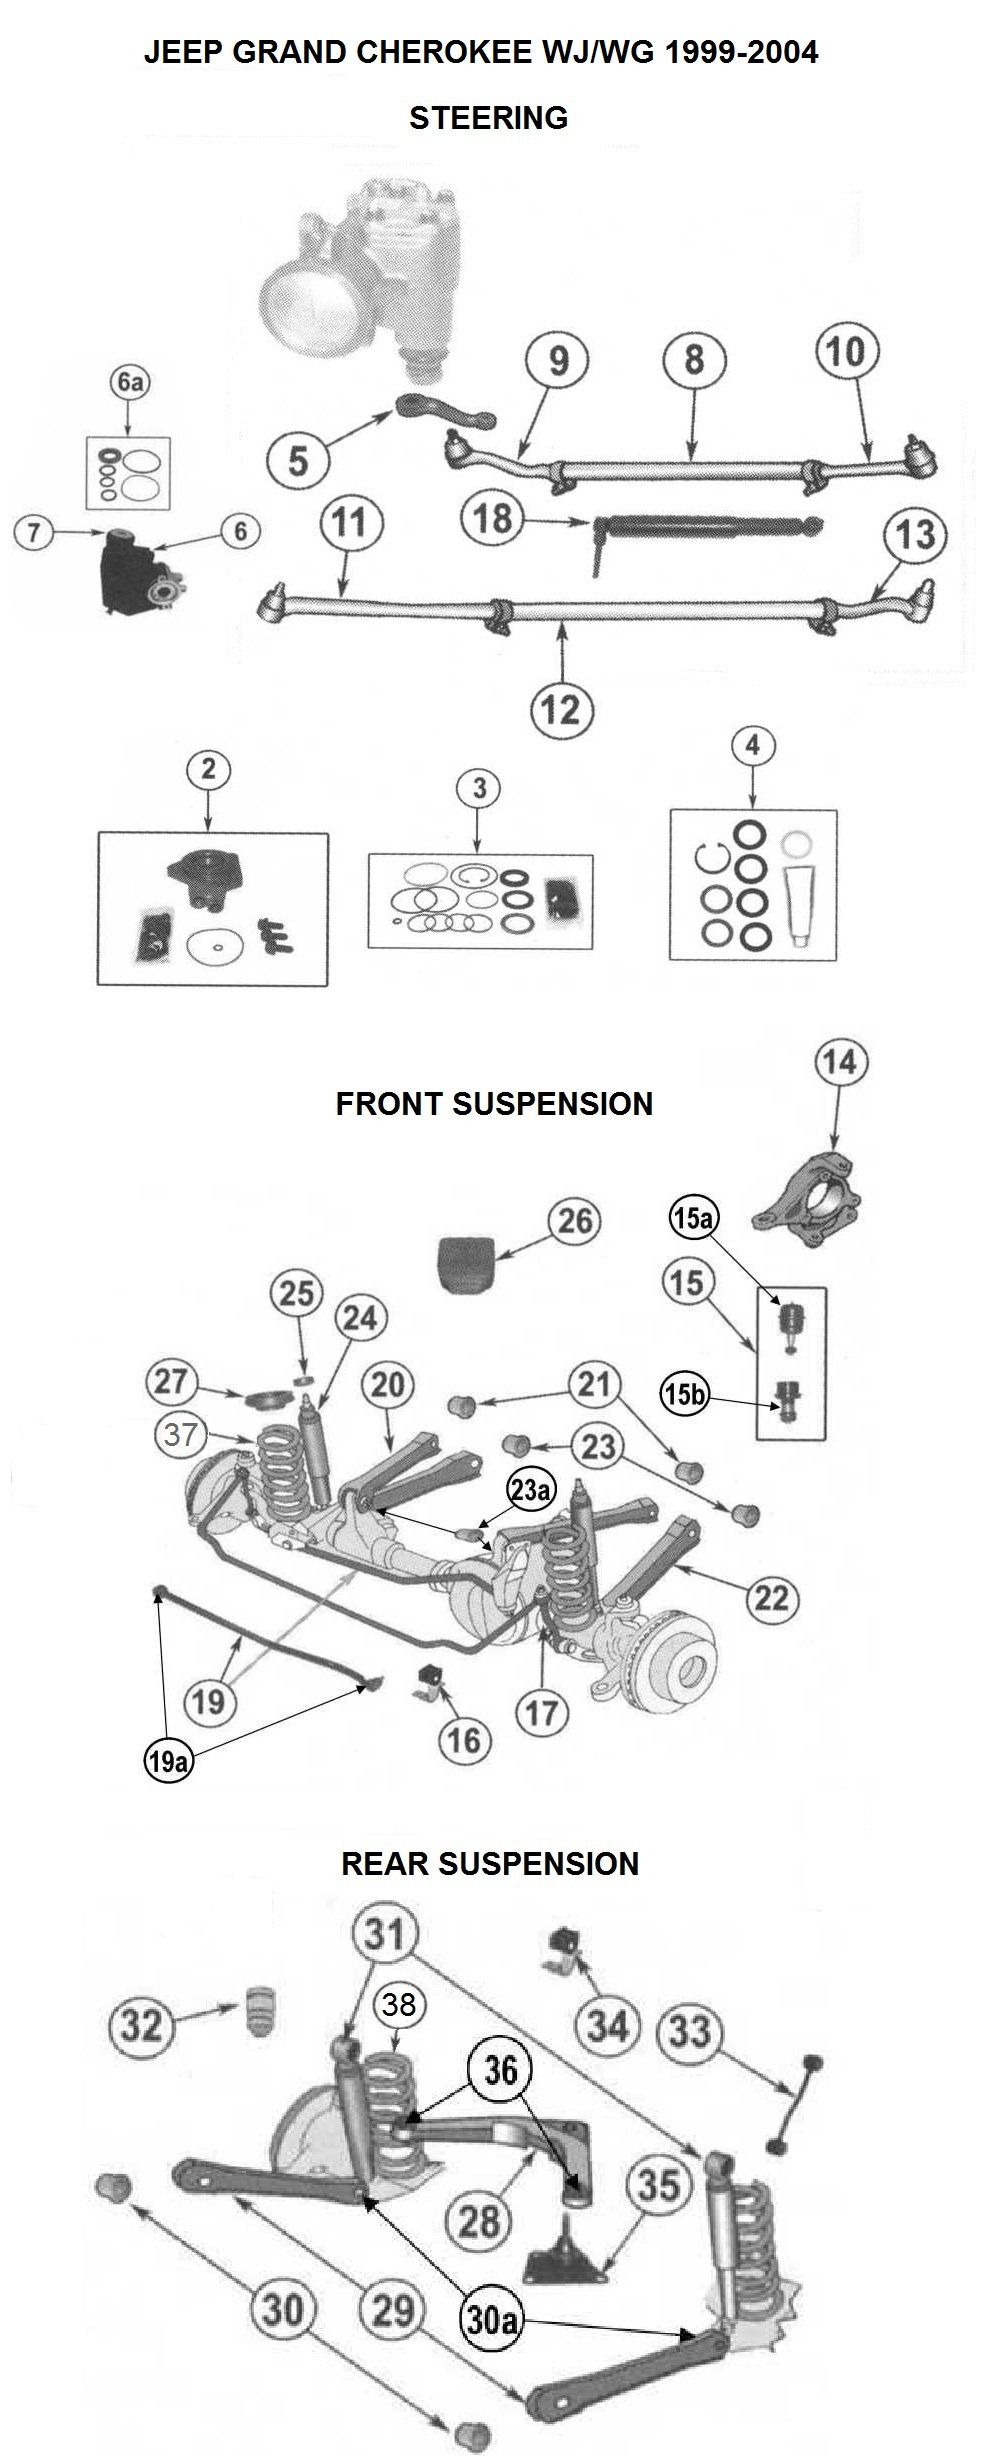 Chrysler Tire Pressure Monitoring System